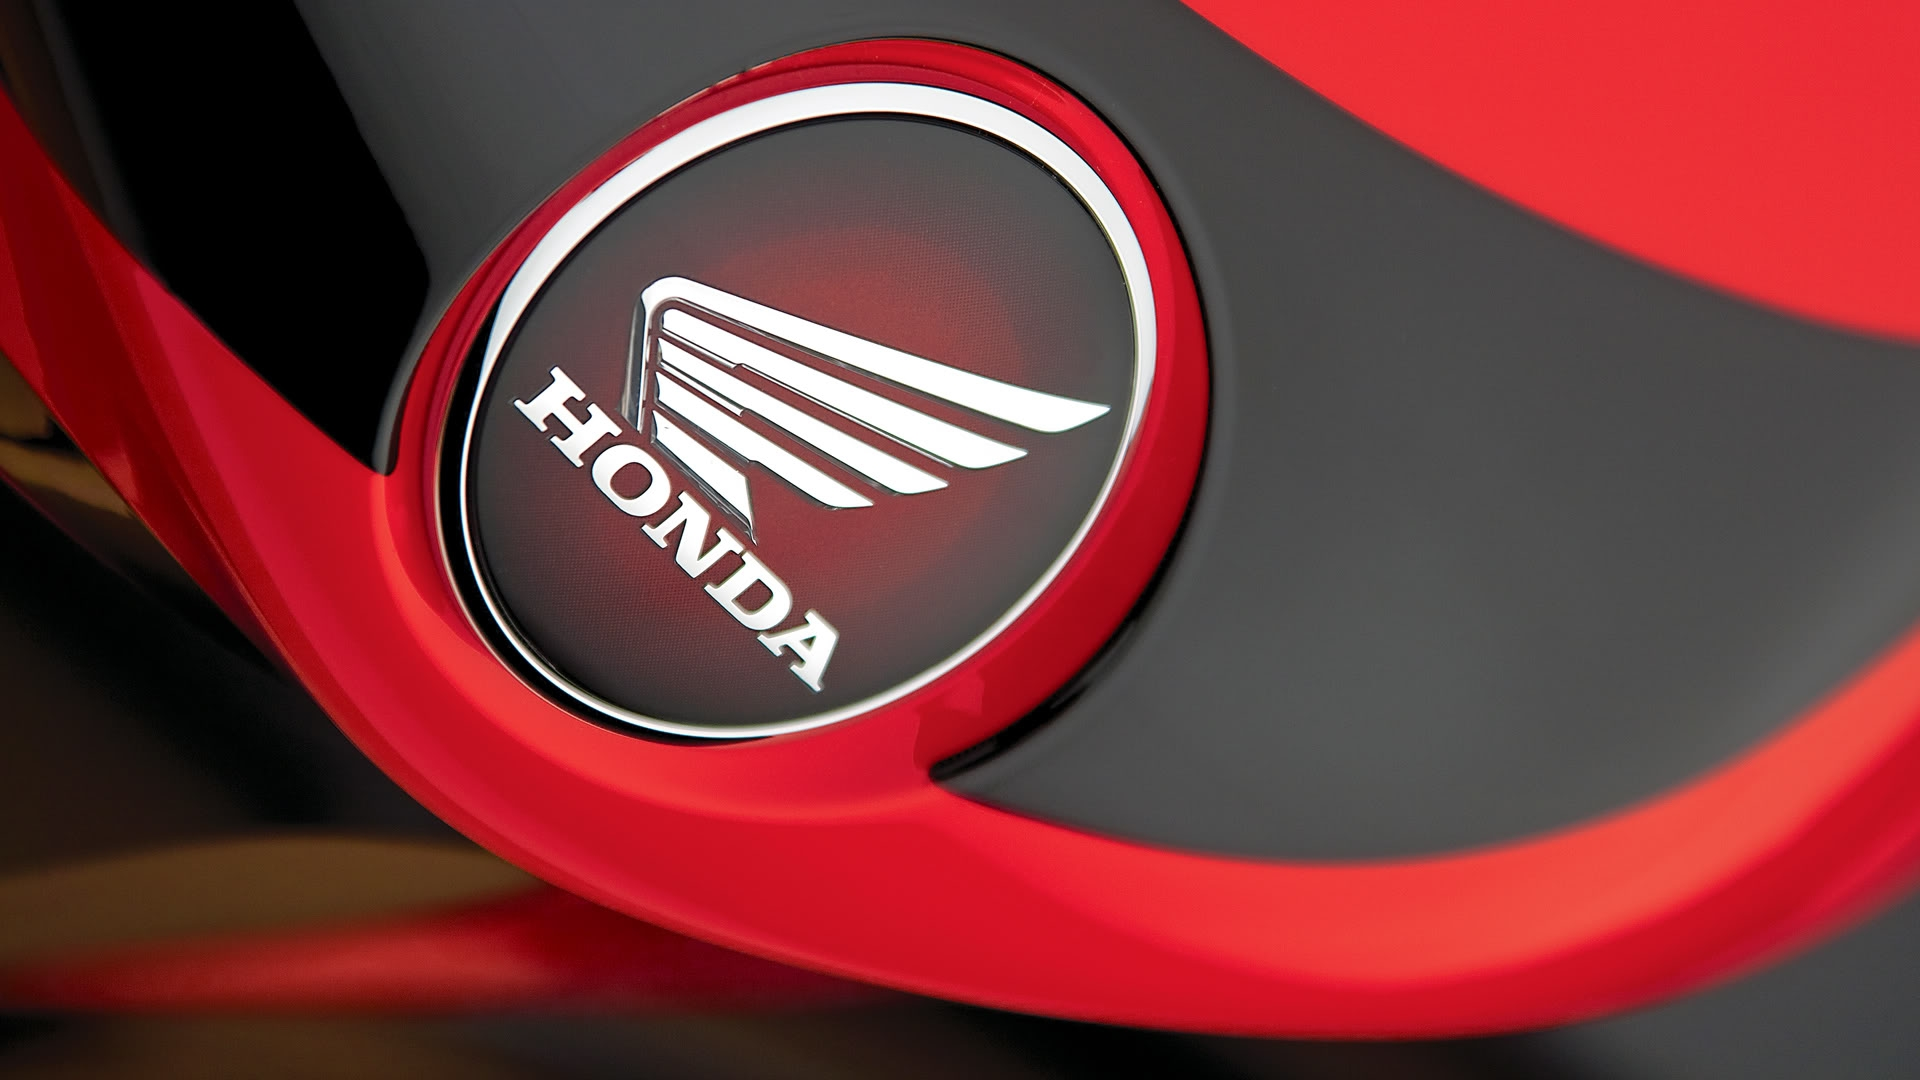 Honda Motorcycle Logo Wallpaper 4